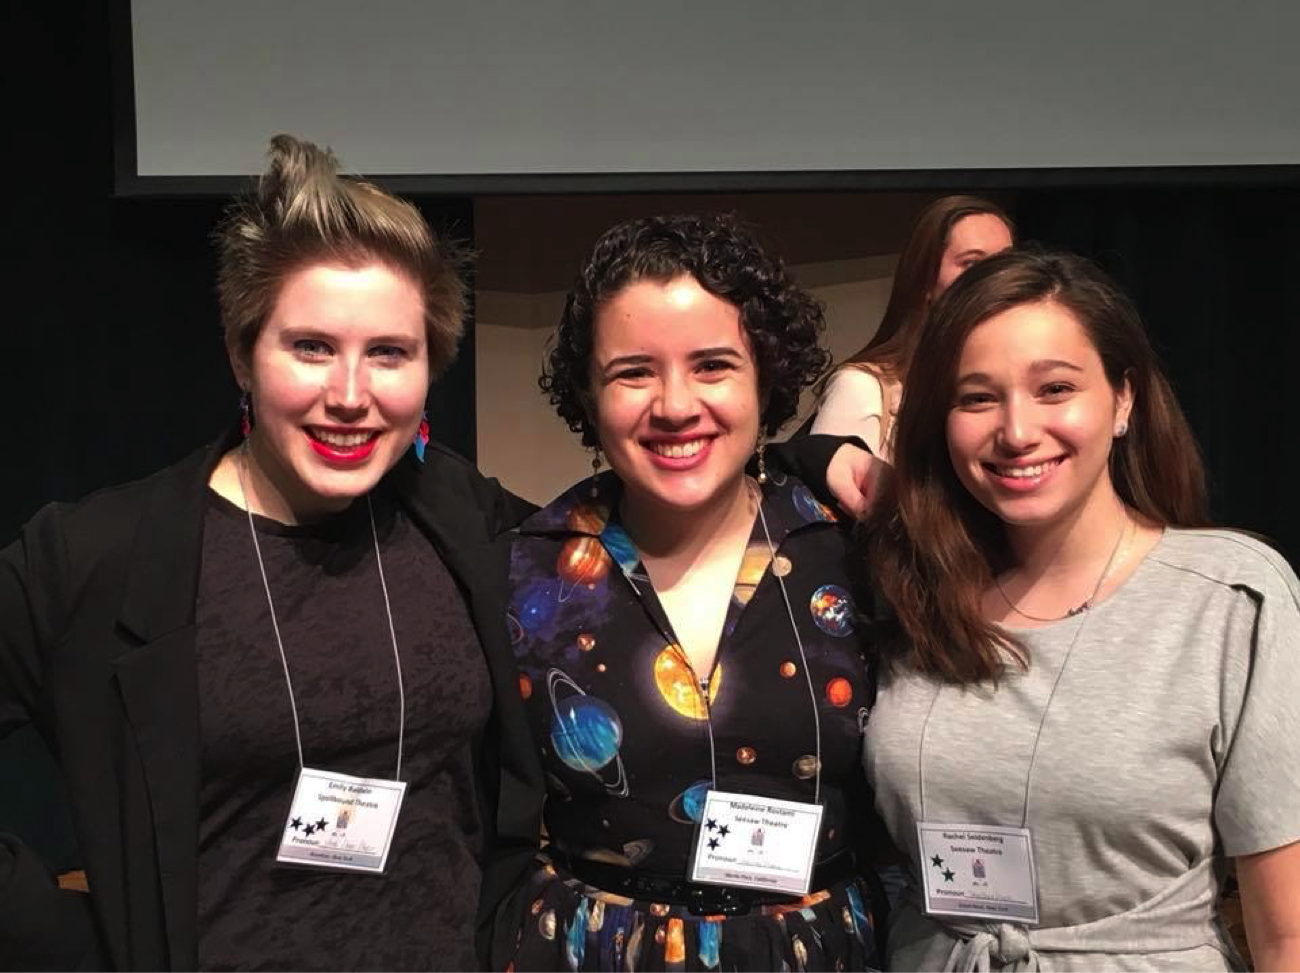 Emily Baldwin, Madeleine Rostami, and Rachel Seidenberg at AATE's annual symposium.